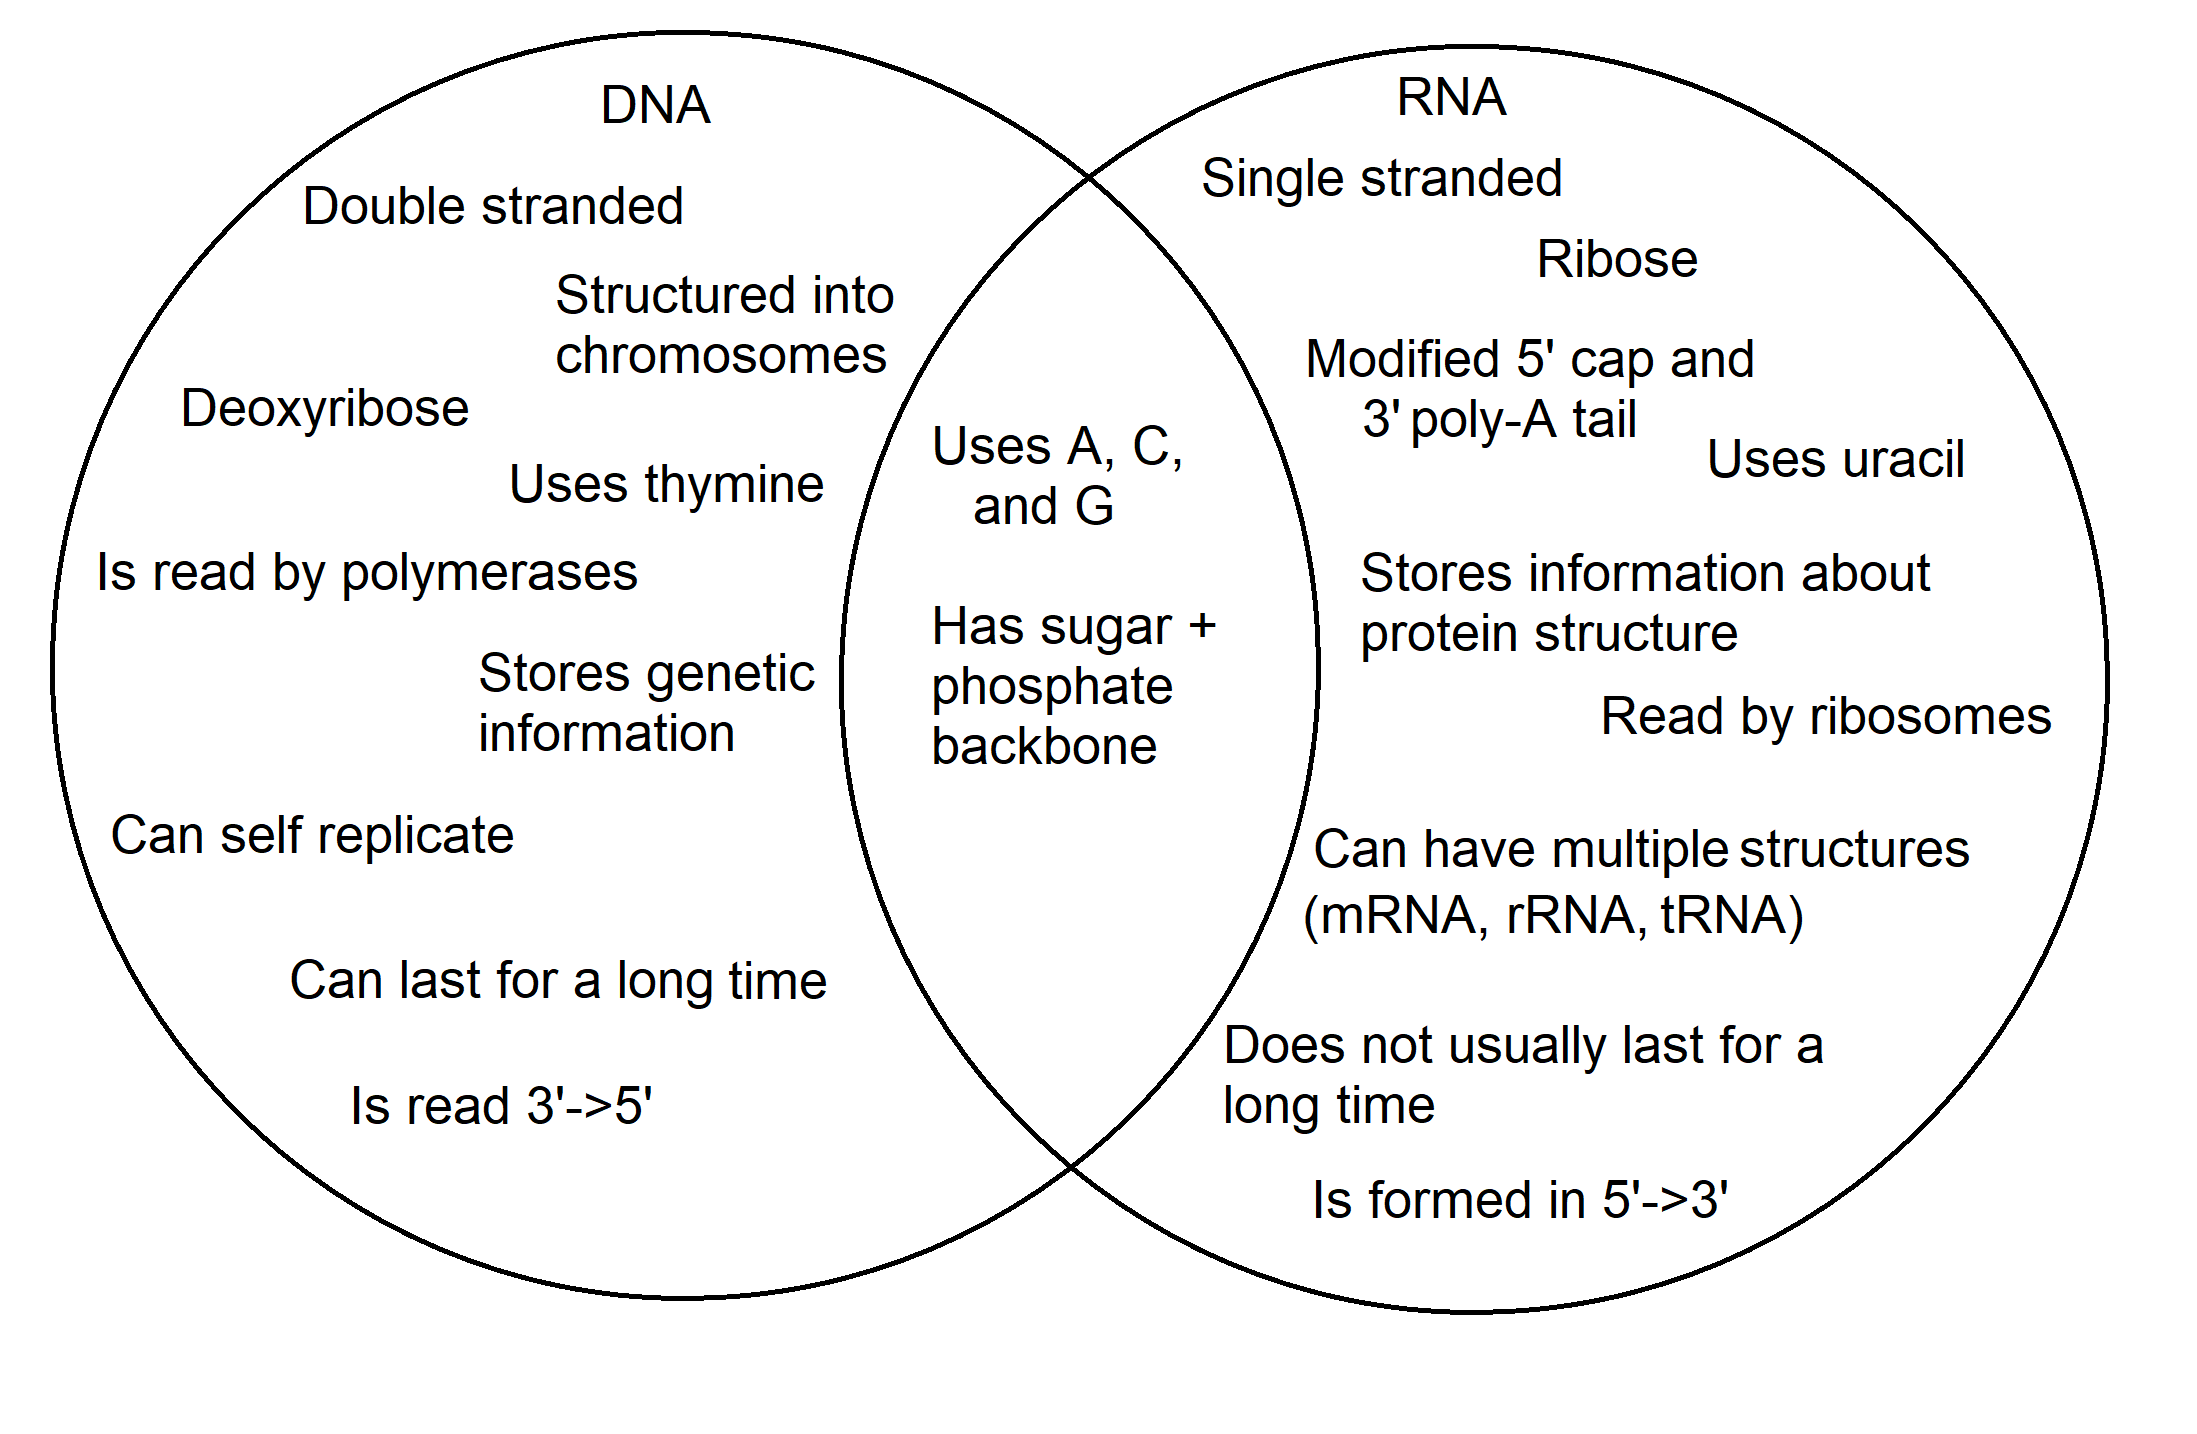 the image is a venn diagram  the dna circle contains: double stranded,  structured